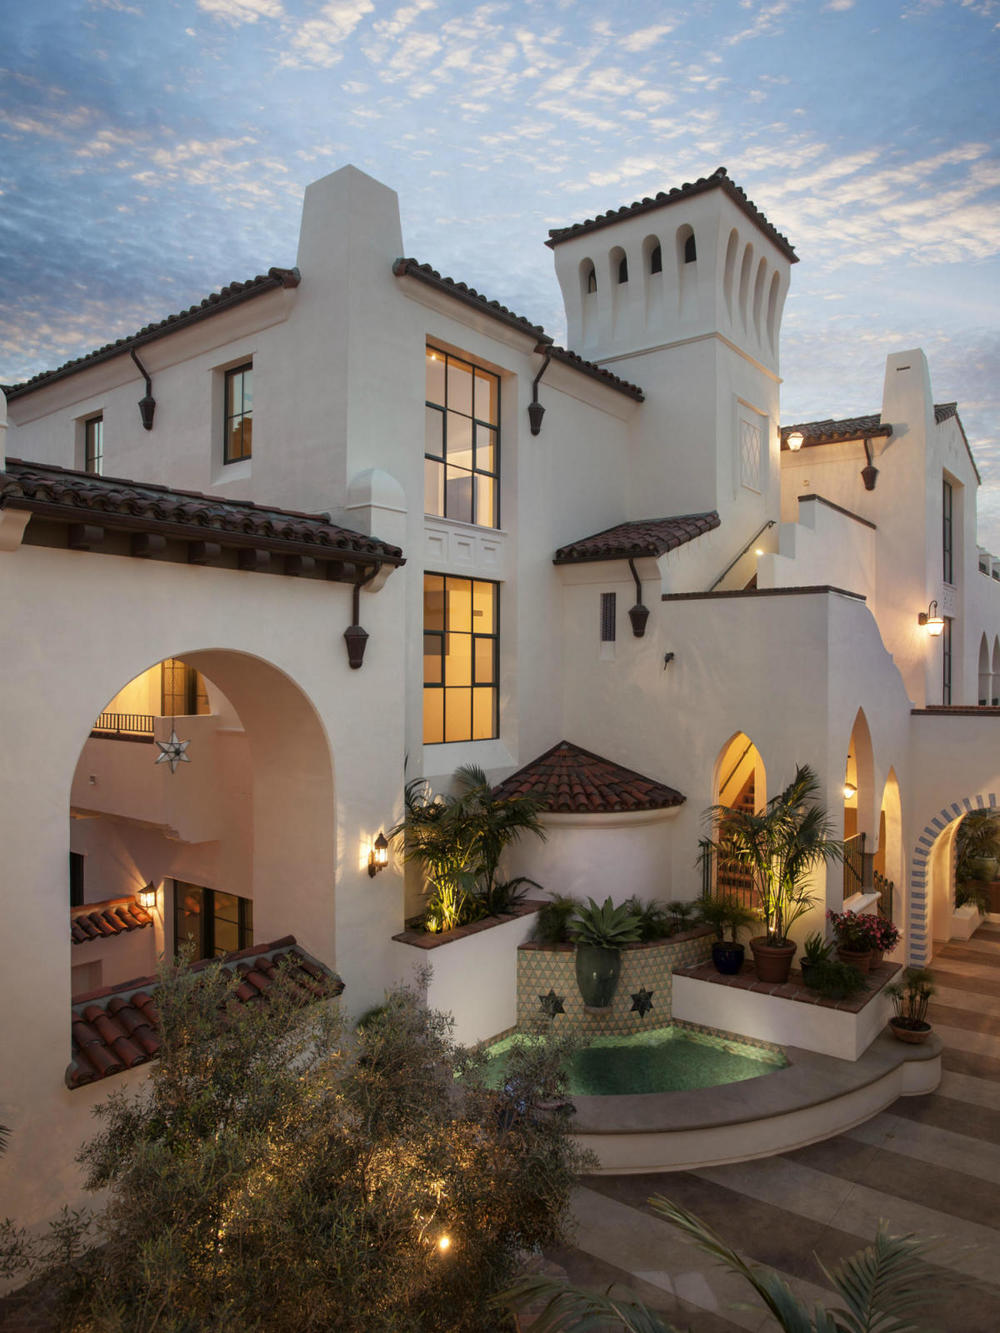 Santa Barbara Luxury Condo - $1,250,000